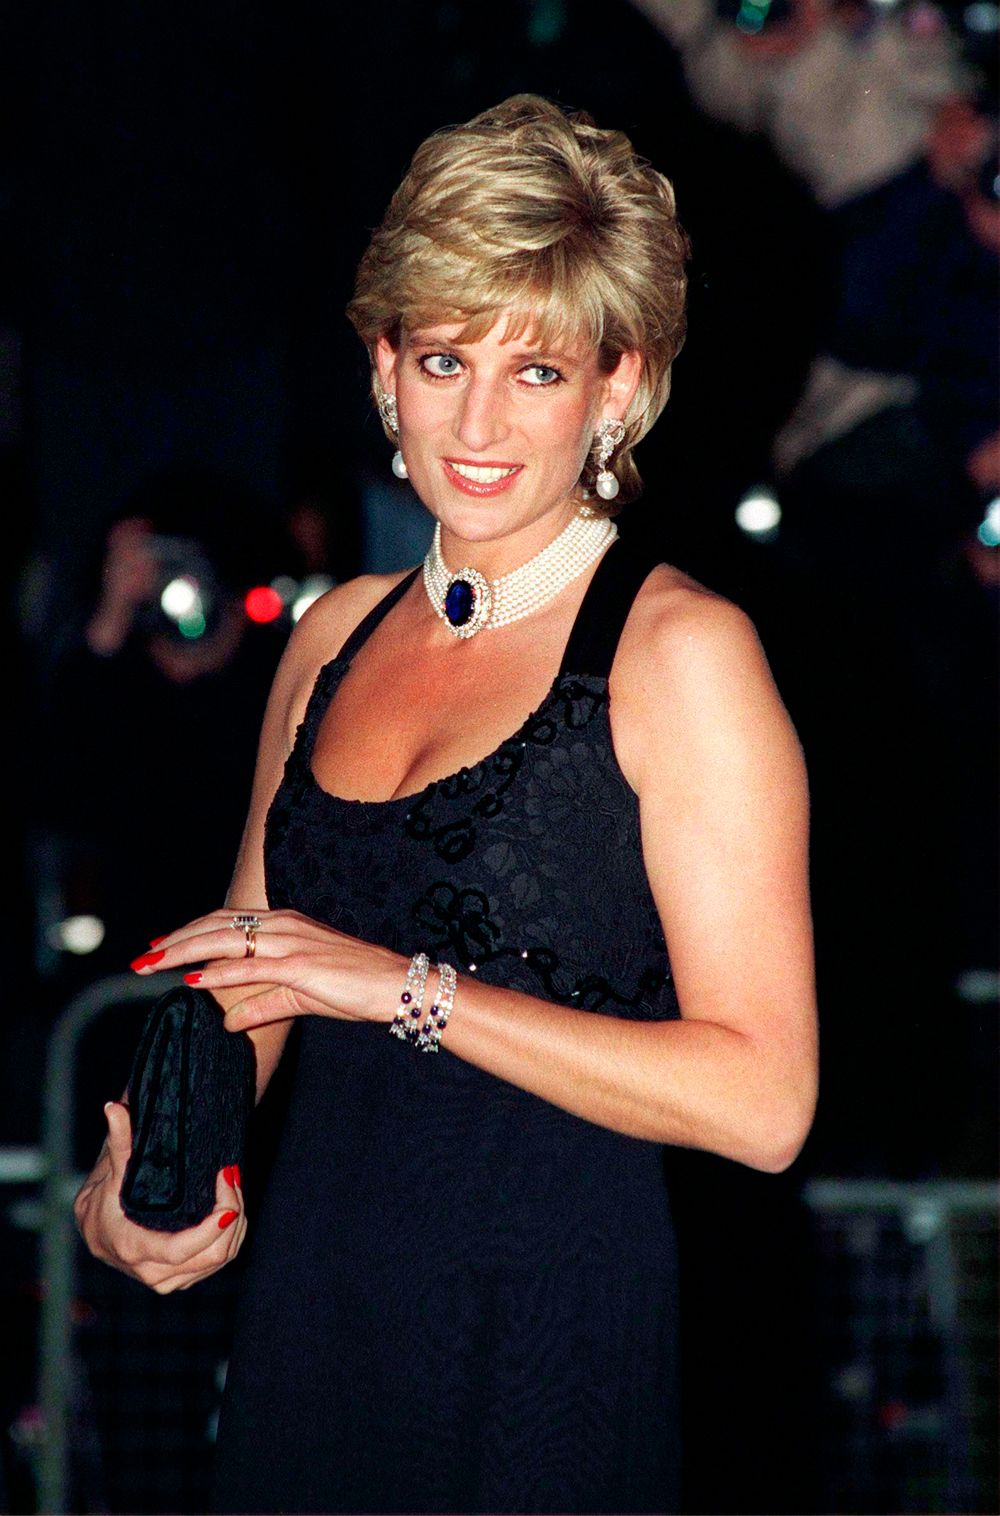 Paris is making a major tribute to Princess Diana near the spot where she died